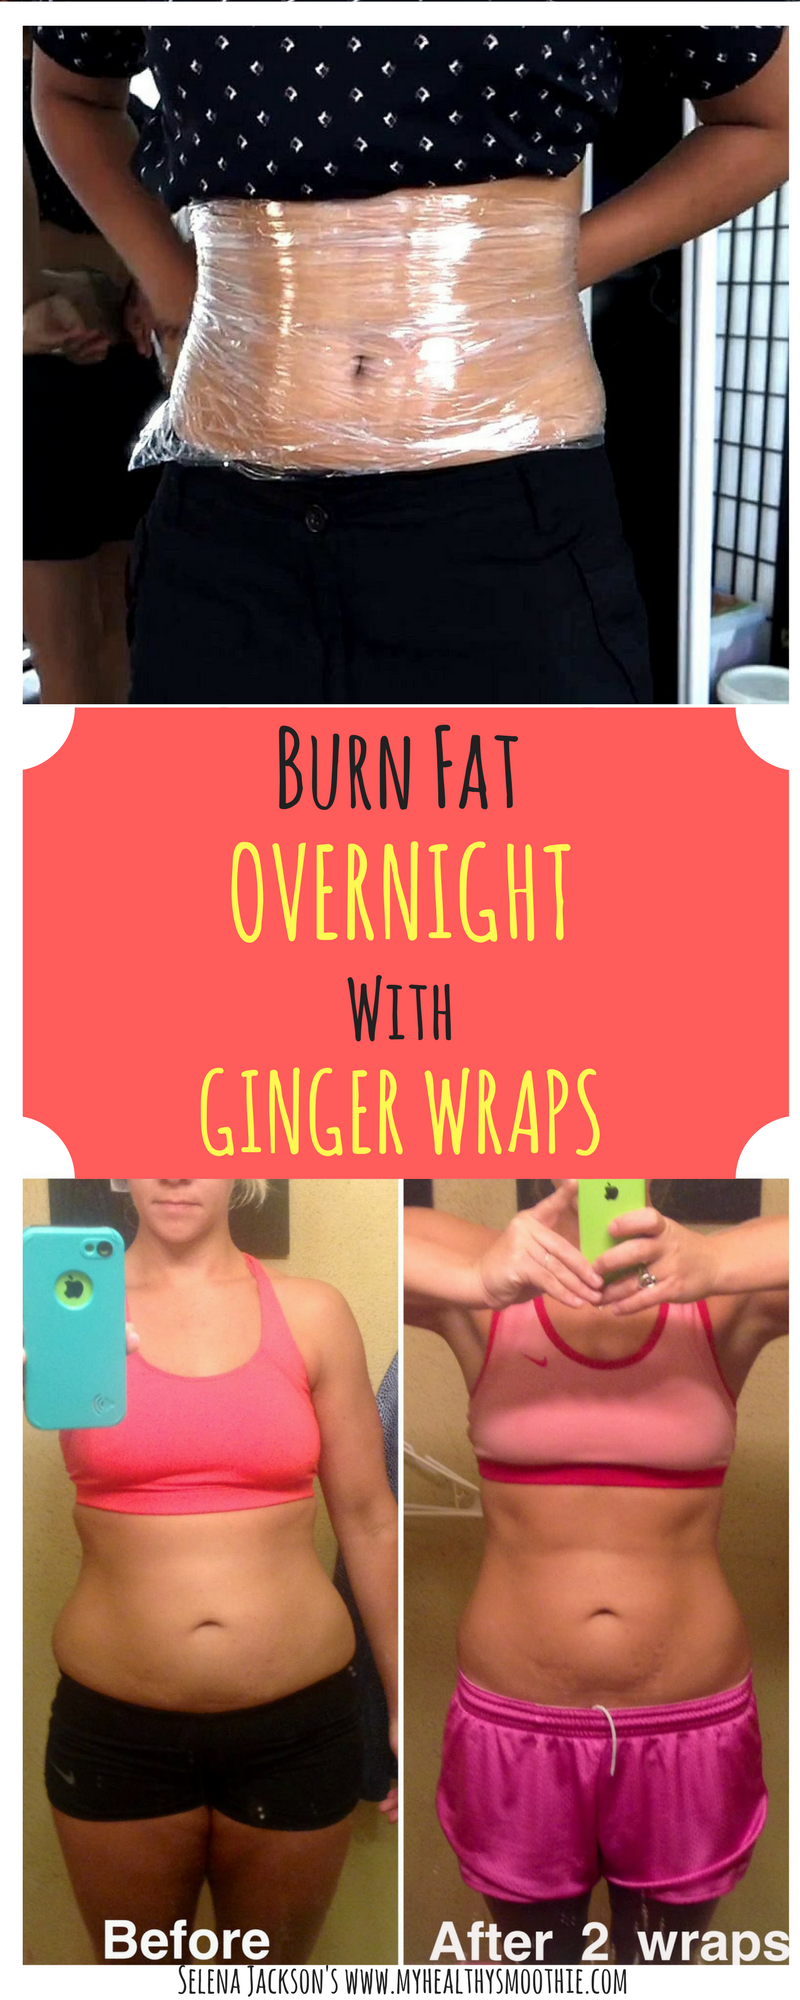 How To Make Ginger Wraps And Burn Belly Fat Overnight Feeling